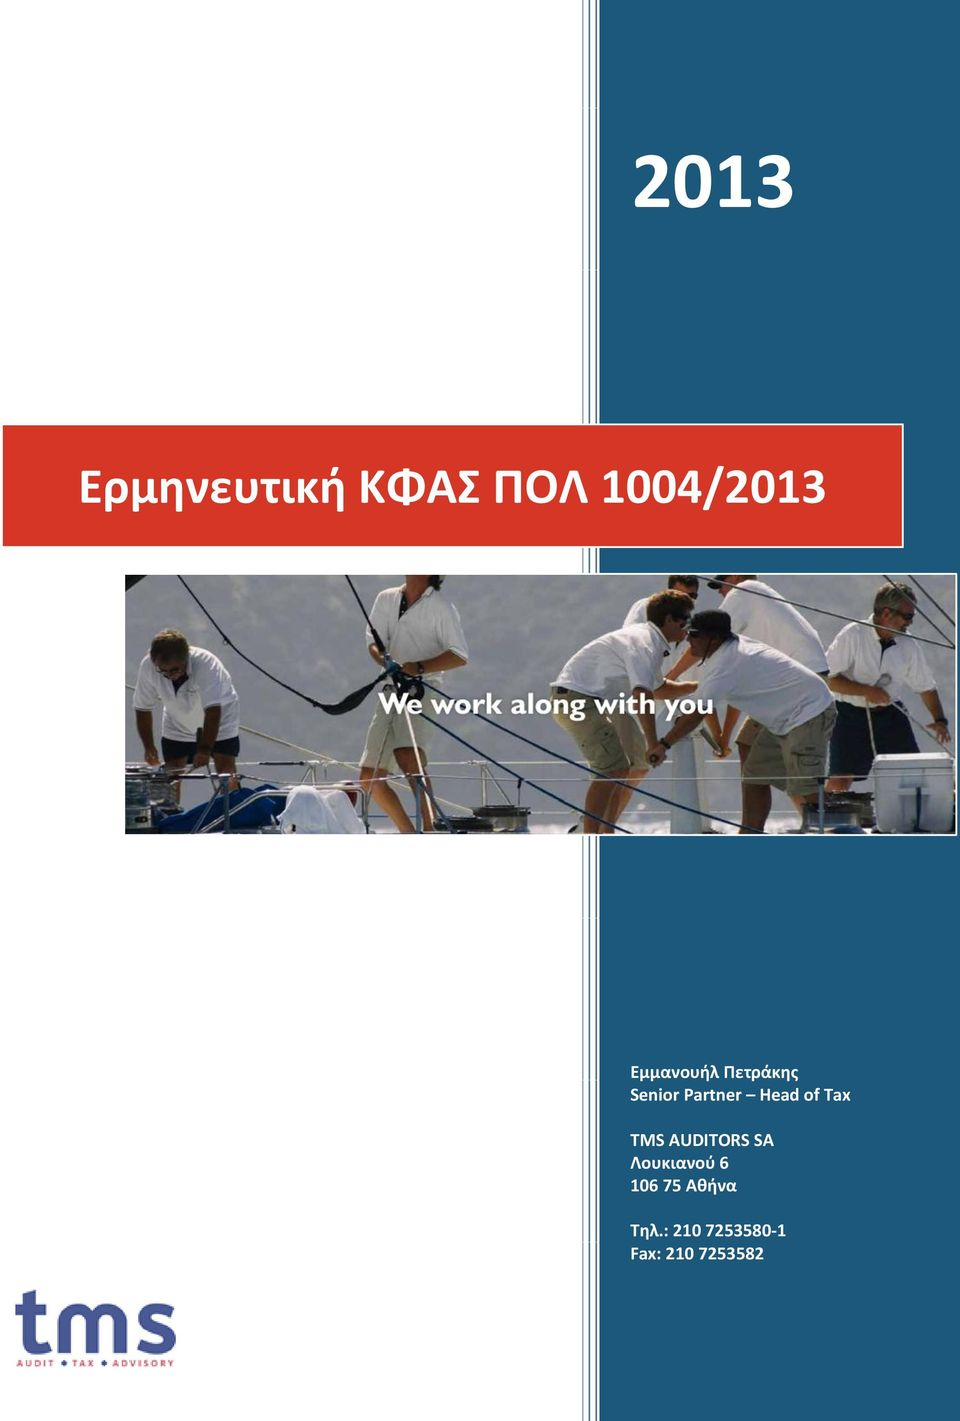 of Tax TMS AUDITORS SA Λουκιανού 6 106